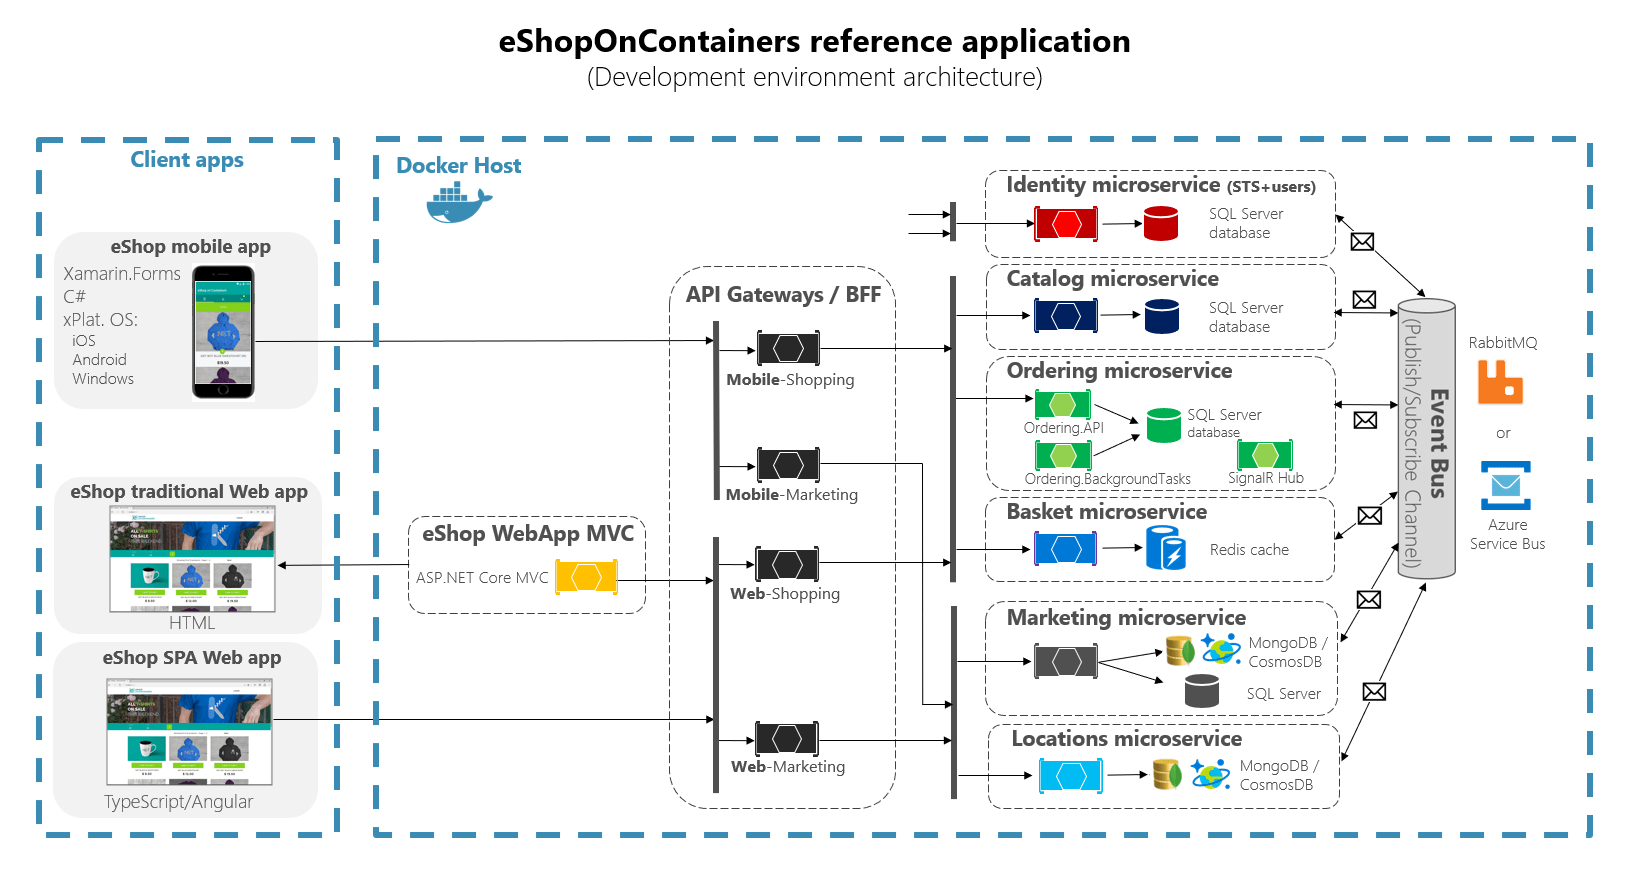 hight resolution of eshoponcontainers architecture diagram showing client apps microservices and the api gateways in between